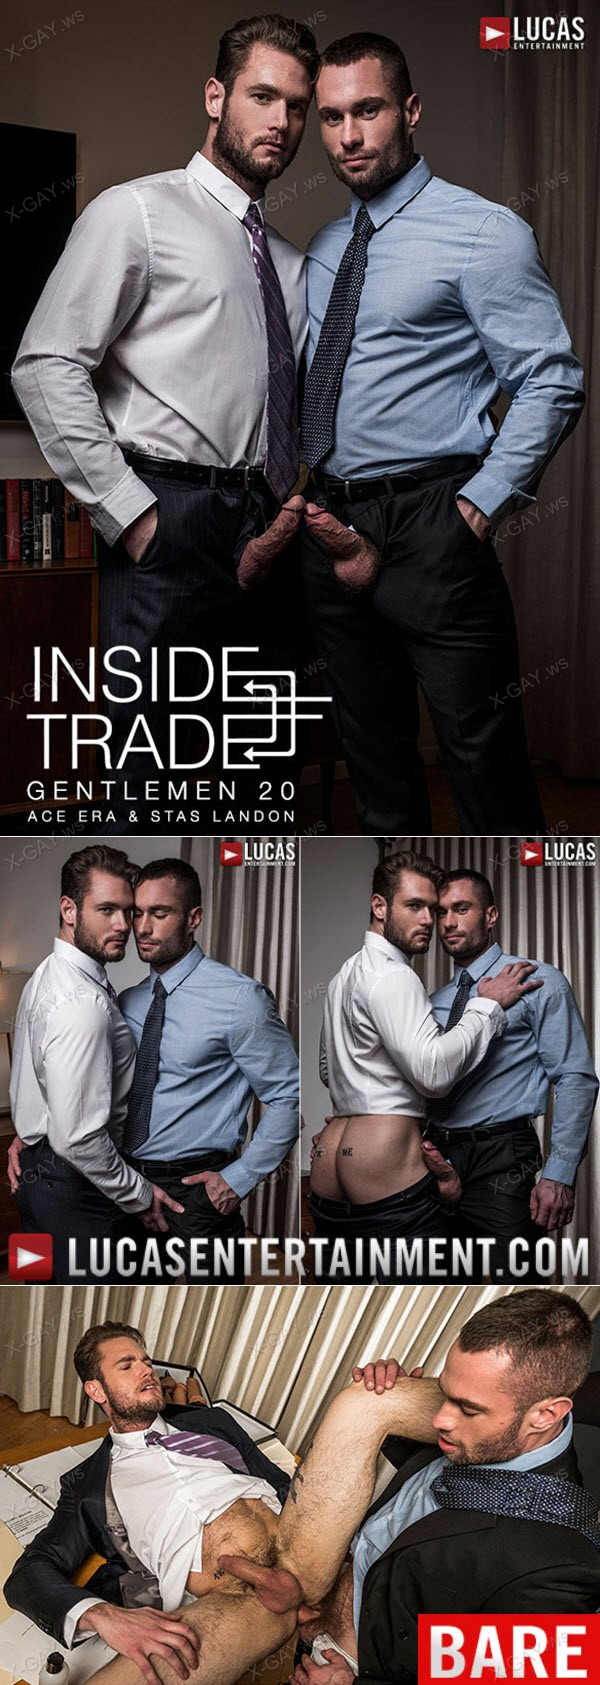 LucasEntertainment: Gentlemen 20: Inside Trade (Stas Landon Barebacks Ace Era)